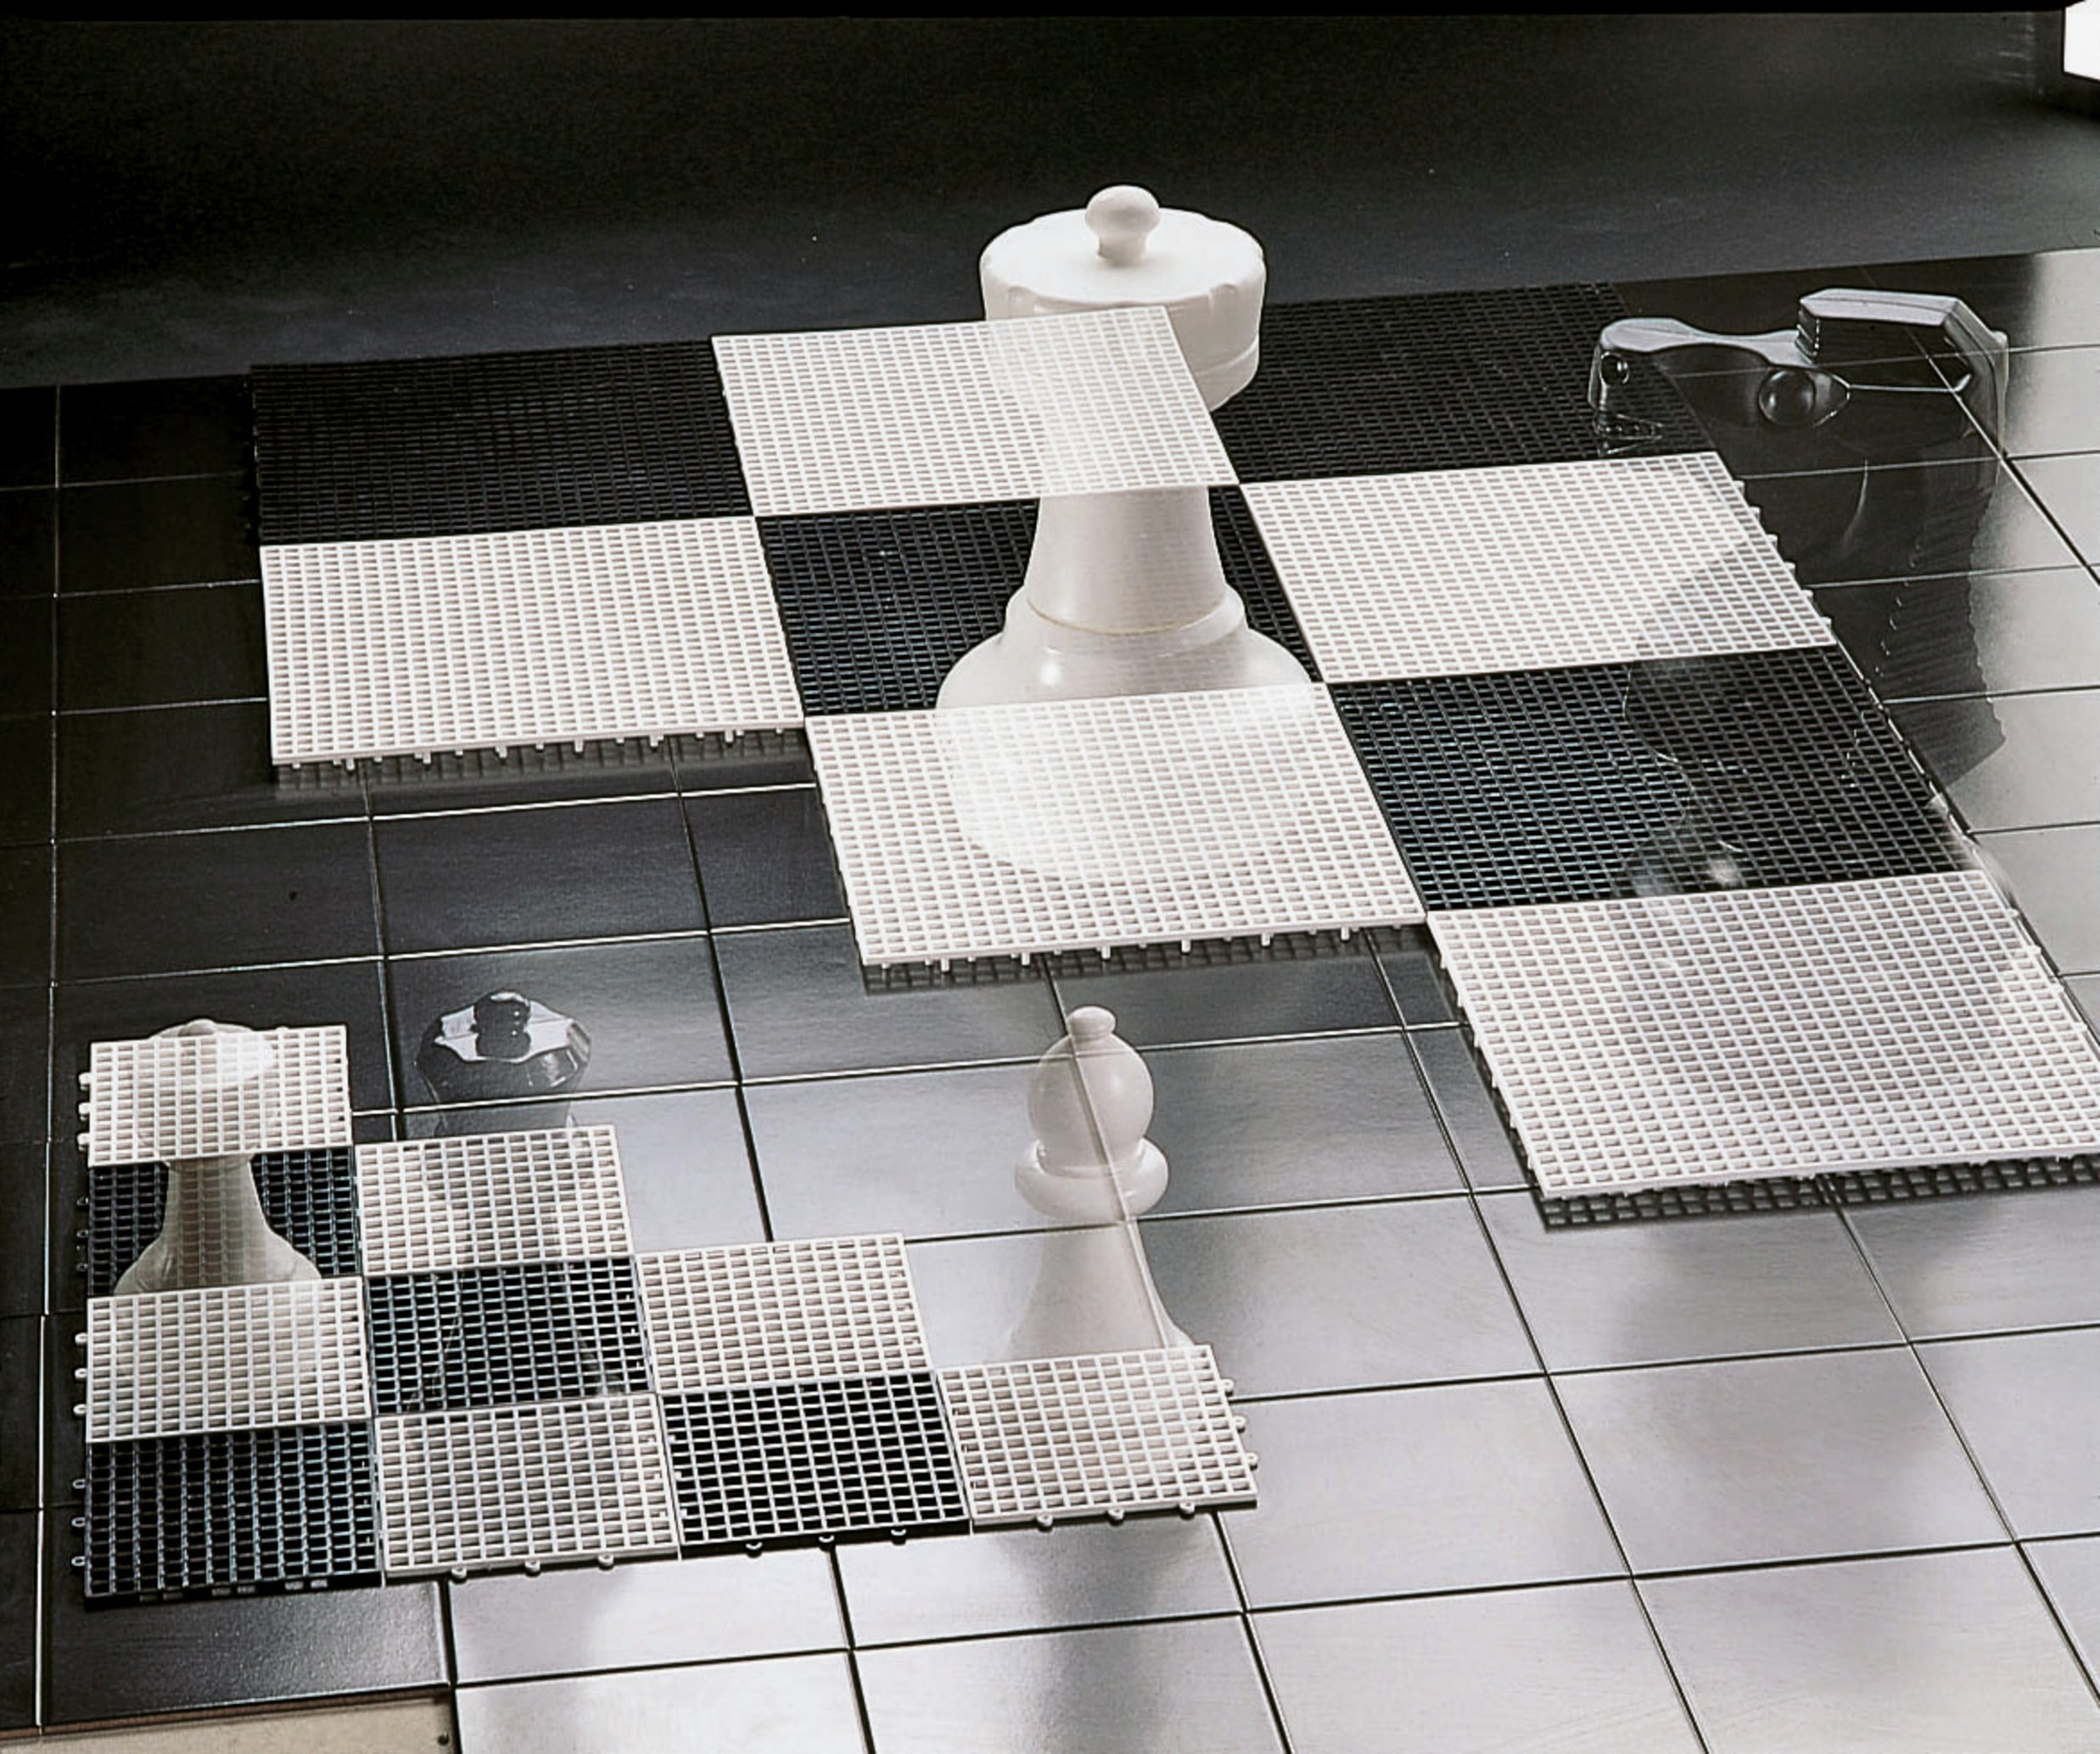 small-base-for-garden-chess-draughts-pieces